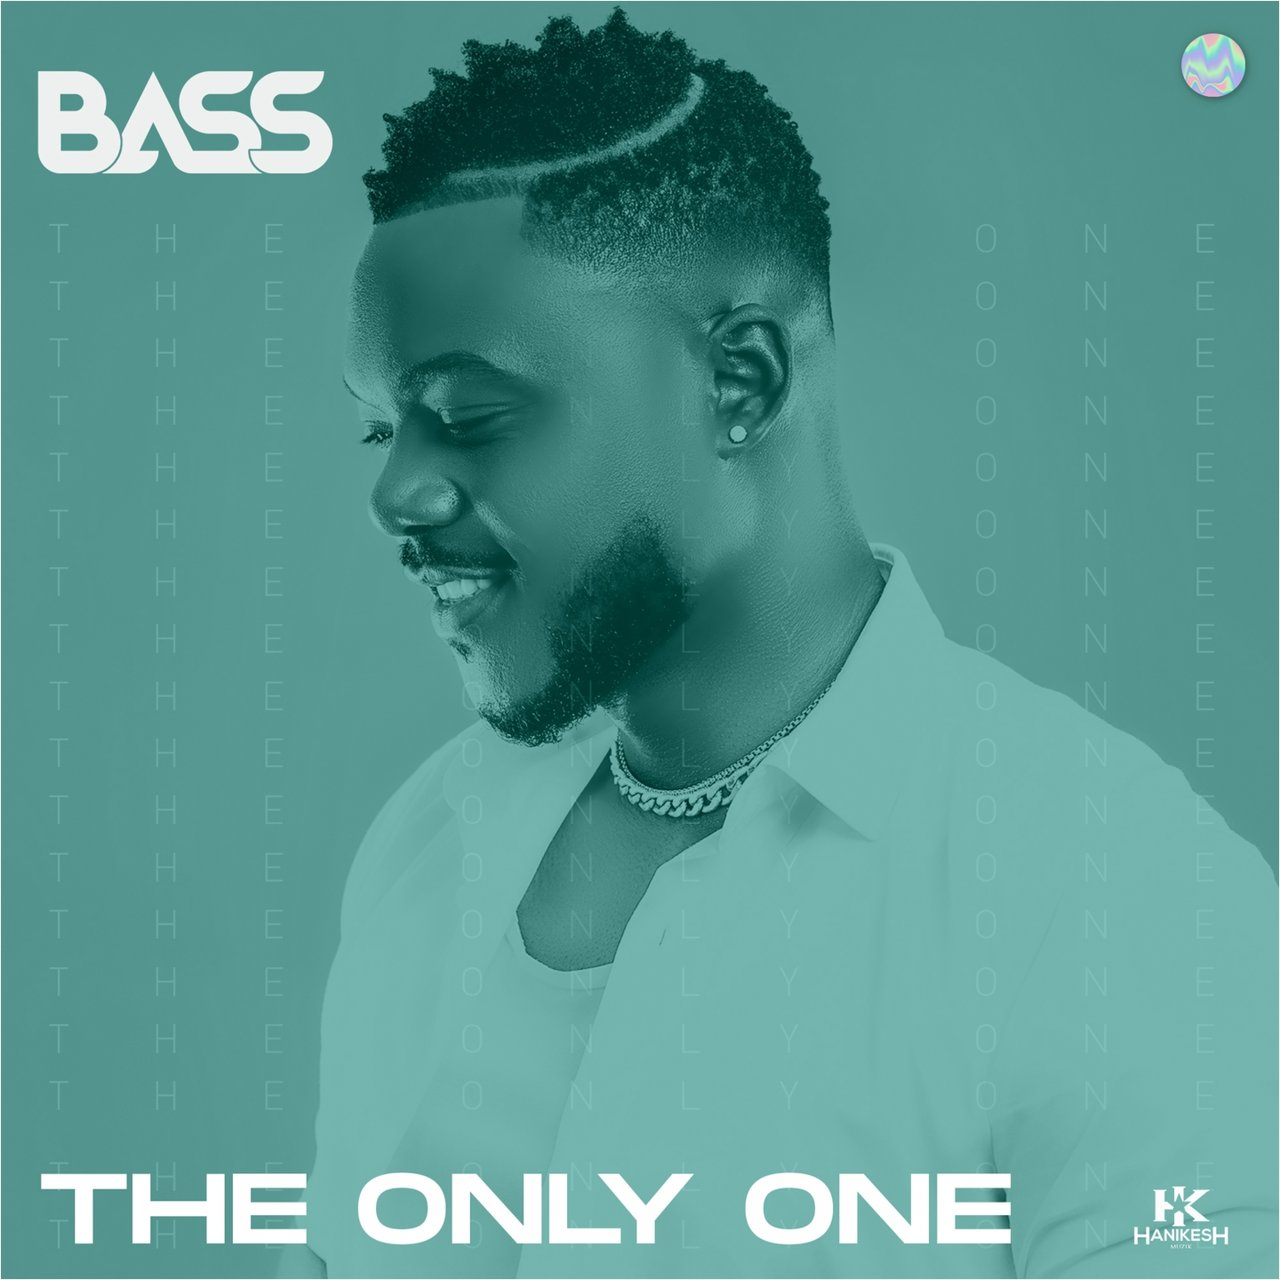 Bass - The Only One (Cover)